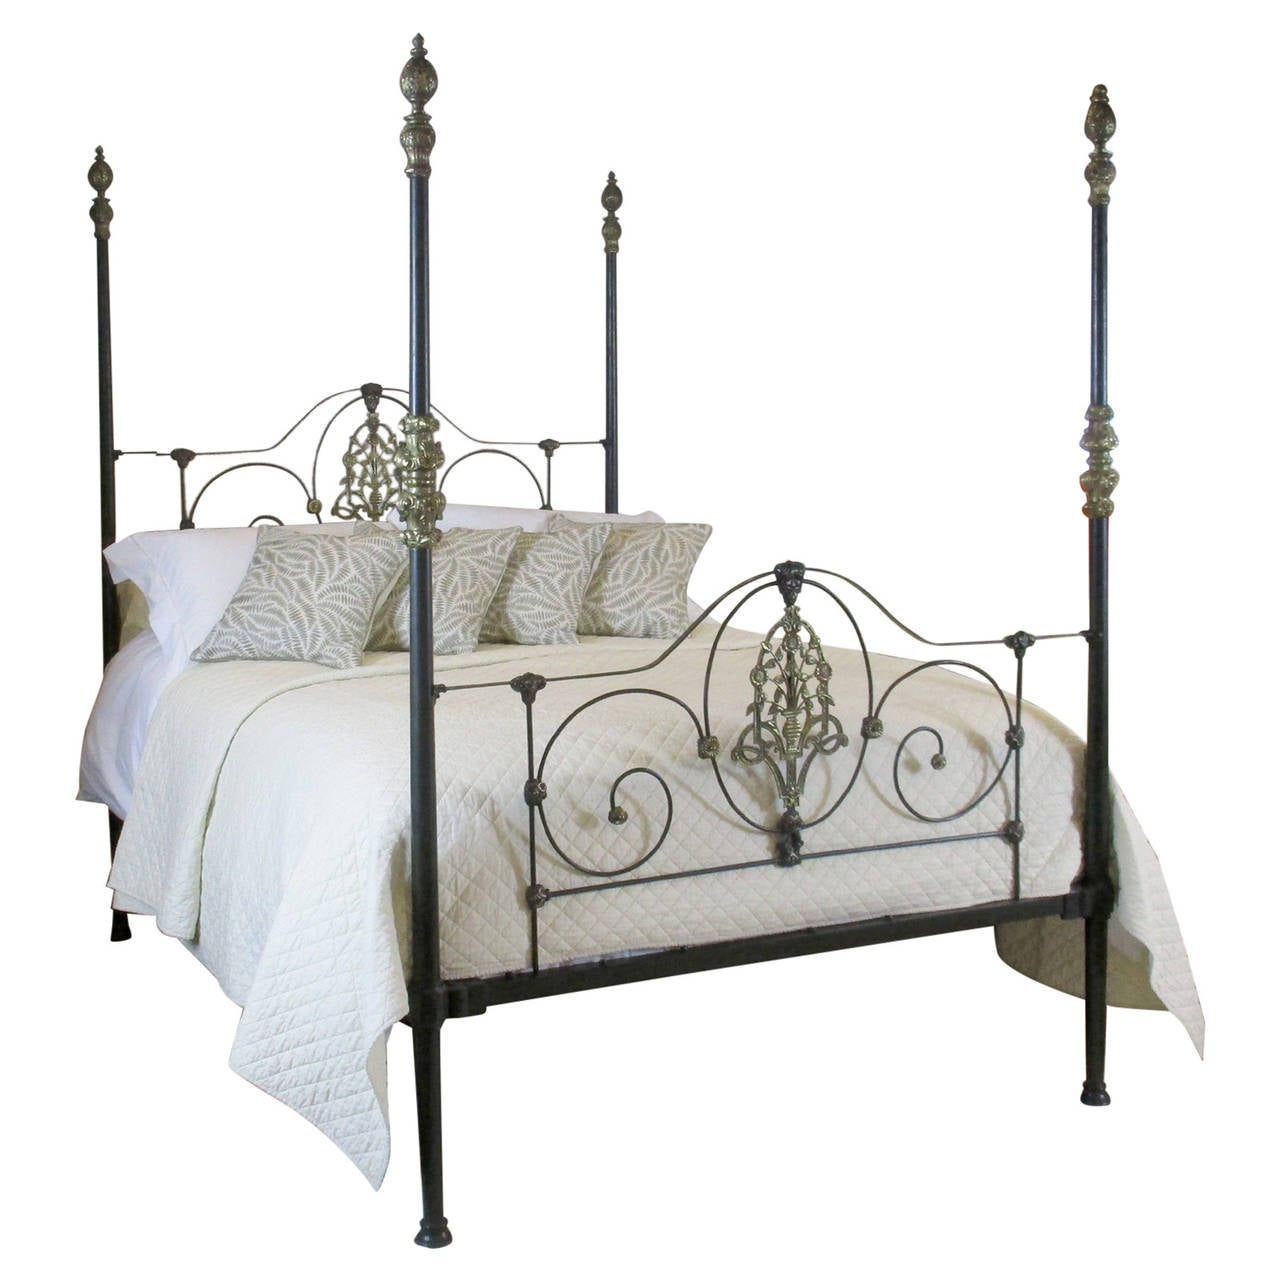 Early American Bedroom Furniture Victorian Four Poster Bed M4p11 At 1stdibs